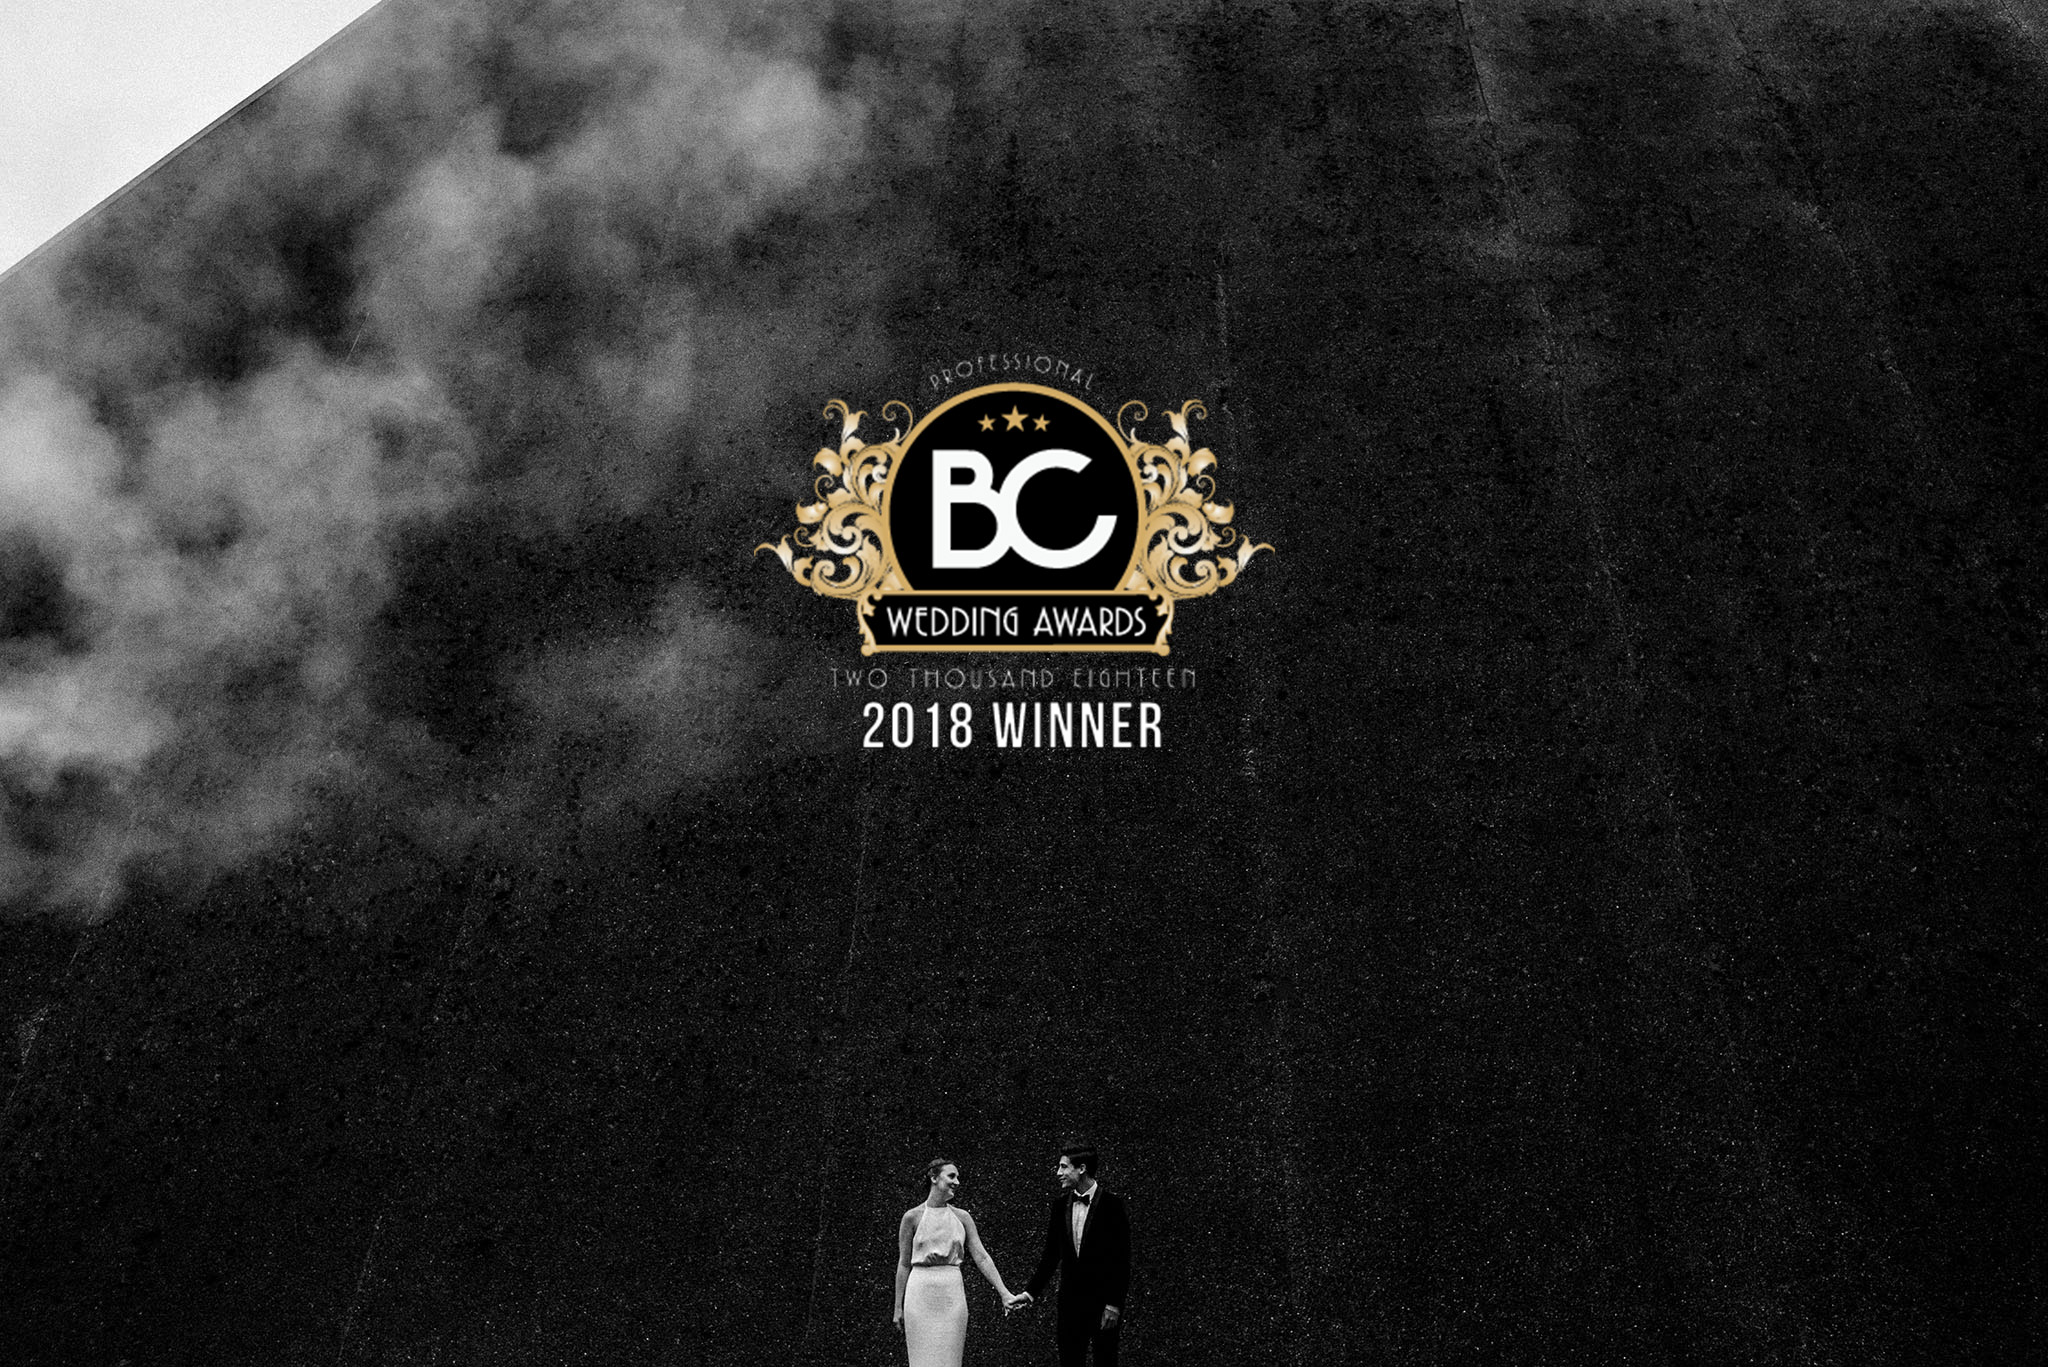 14-BCWeddingAwardsIndustryAchievement